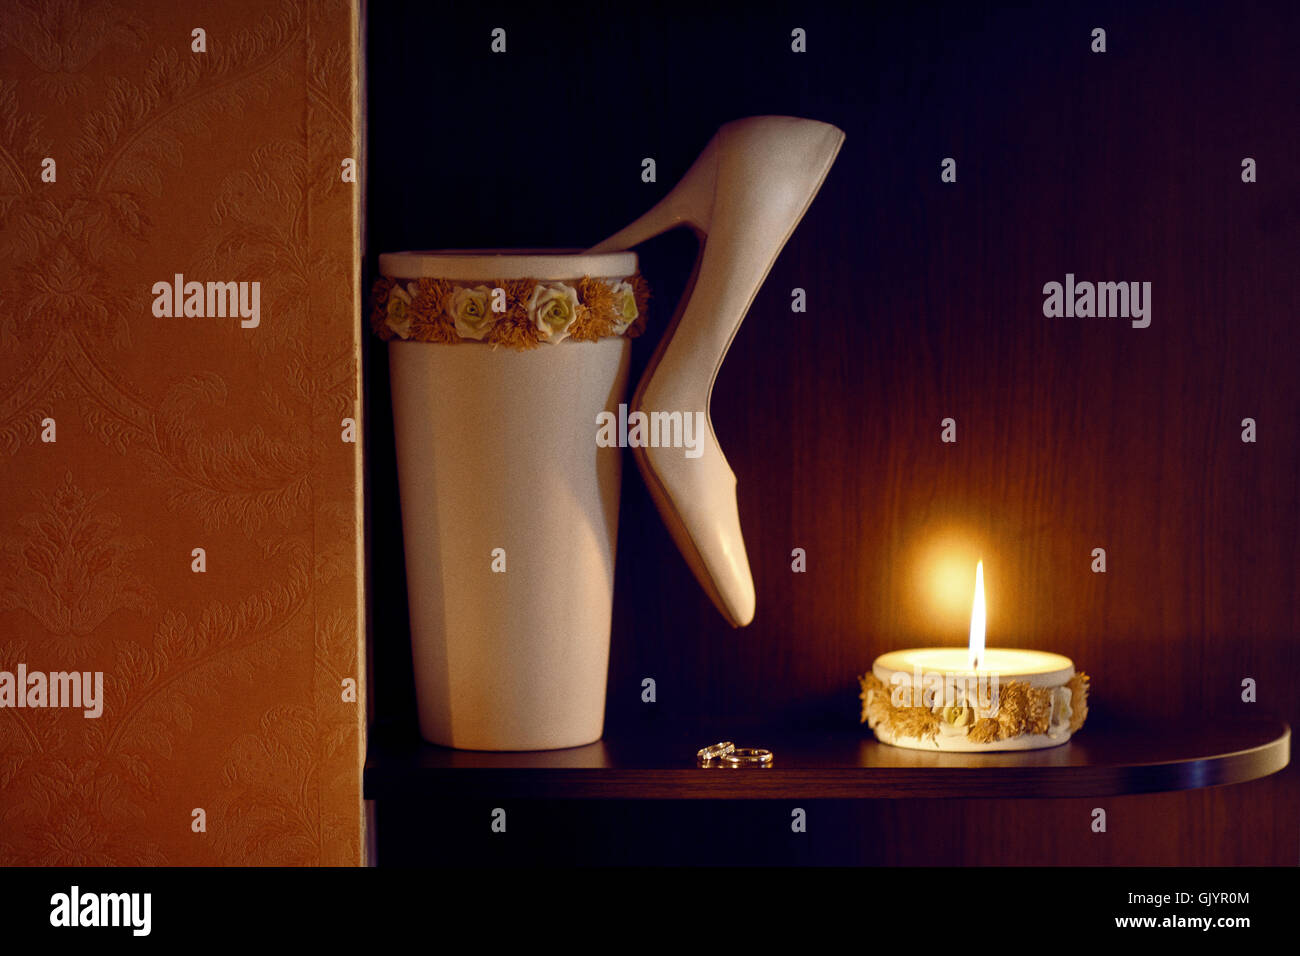 candle, shoe and rings - Stock Image